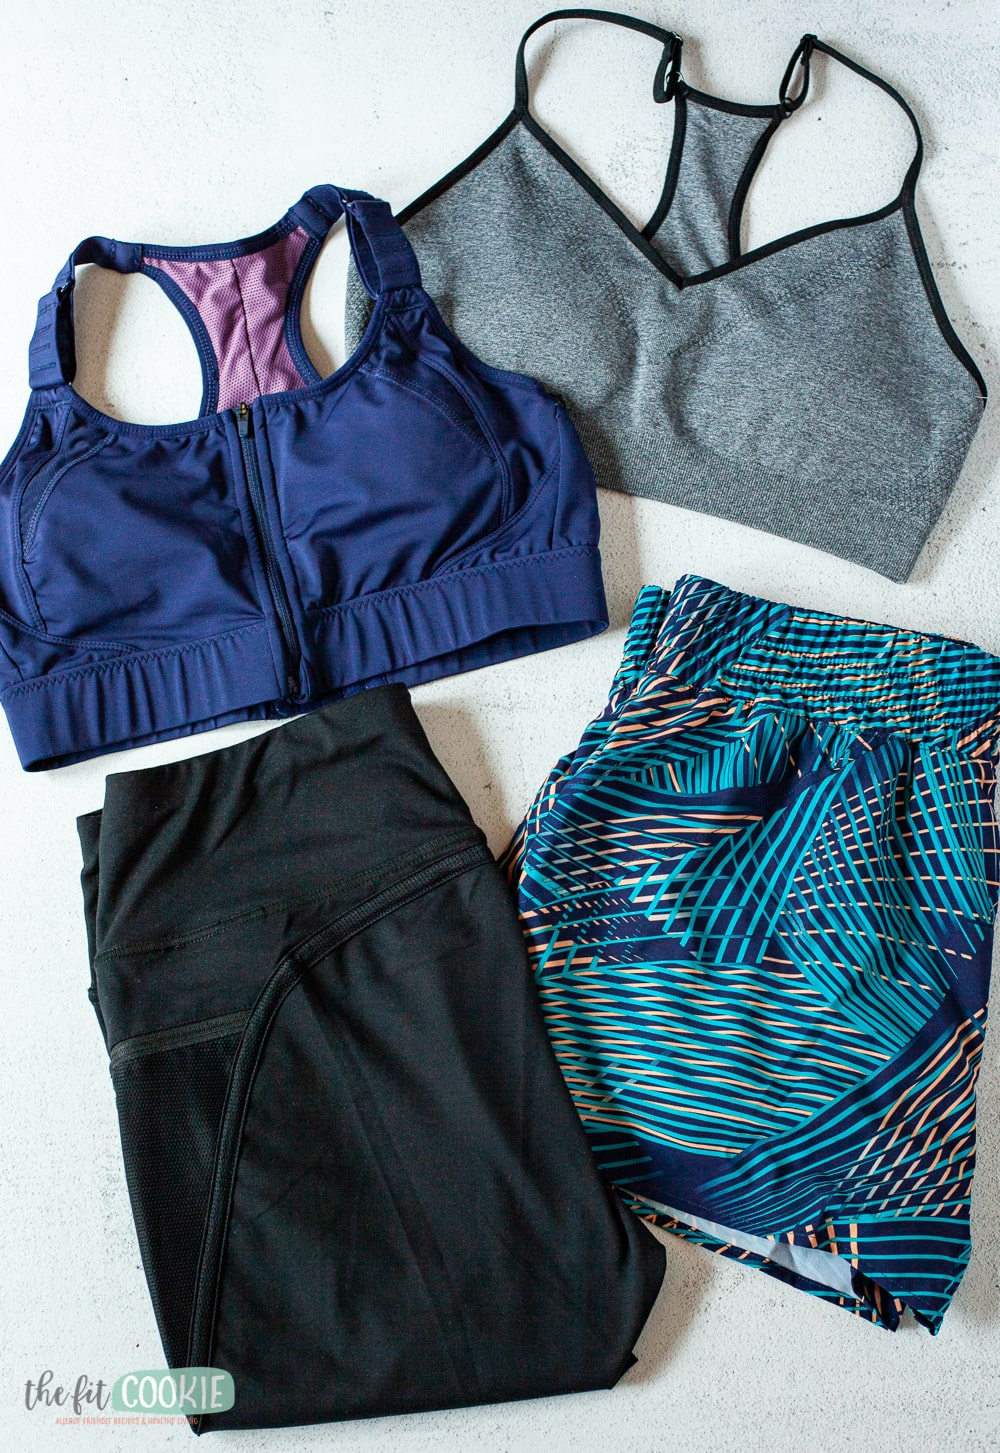 Hylete popular women's fitness clothing items